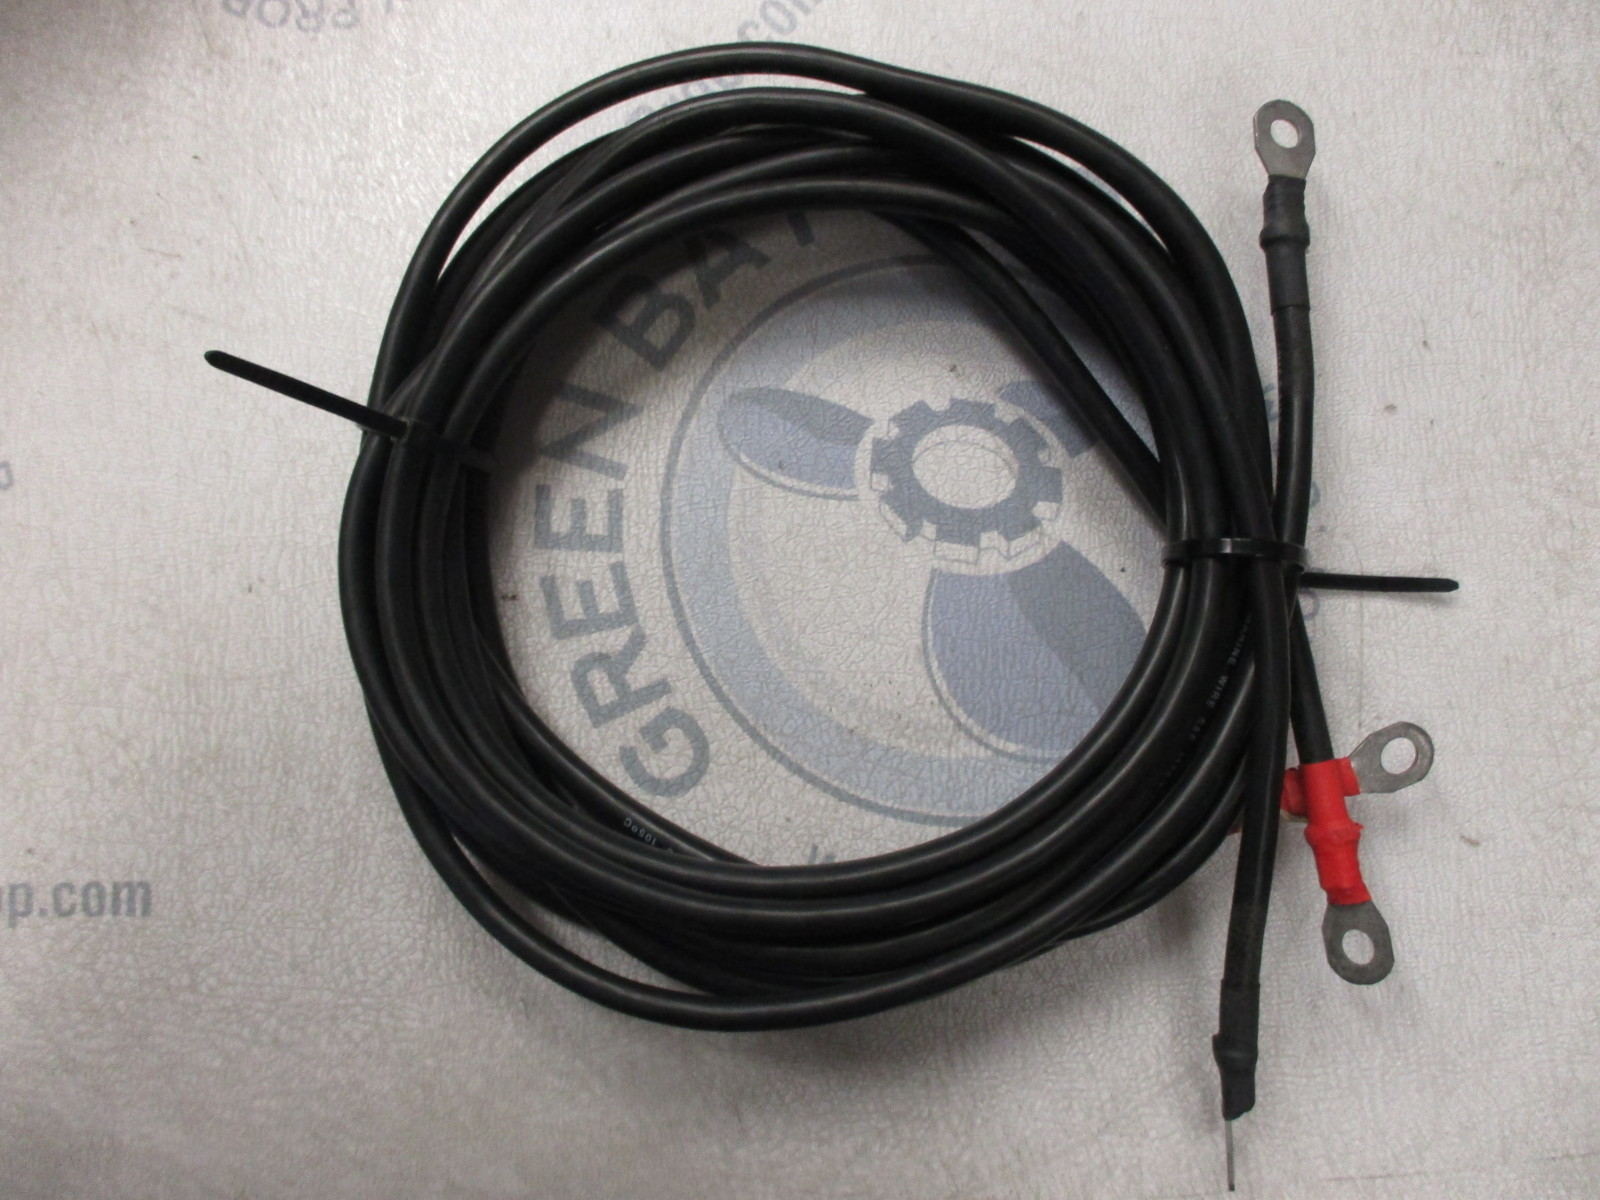 Boat Battery Cables : New marine boat battery cable cables wire black red